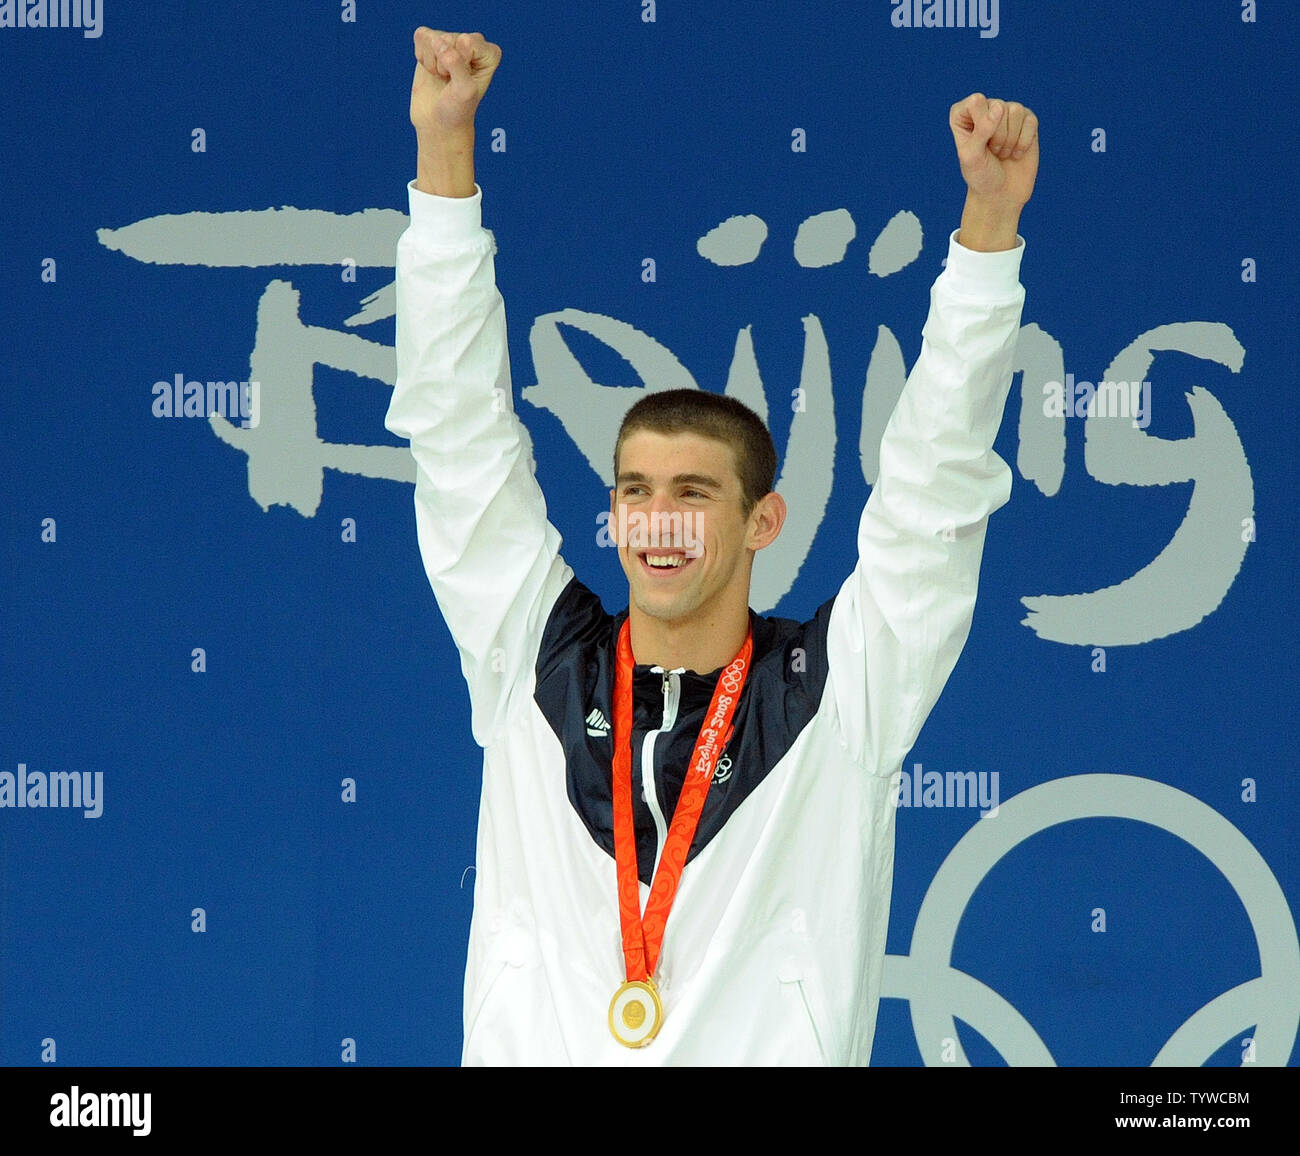 USA's Michael Phelps raises his arms after receiving his 7th gold medal for the Men's 100M Butterfly final at the National Aquatic Center (Water Cube) during the 2008 Summer Olympics in Beijing, China, on August 16, 2008. Phelps is tied with Mark Spitz, the swimmer who set the record for 7 gold medals in a single Olympics in Munich, 1972.   (UPI Photo/Roger L. Wollenberg) - Stock Image